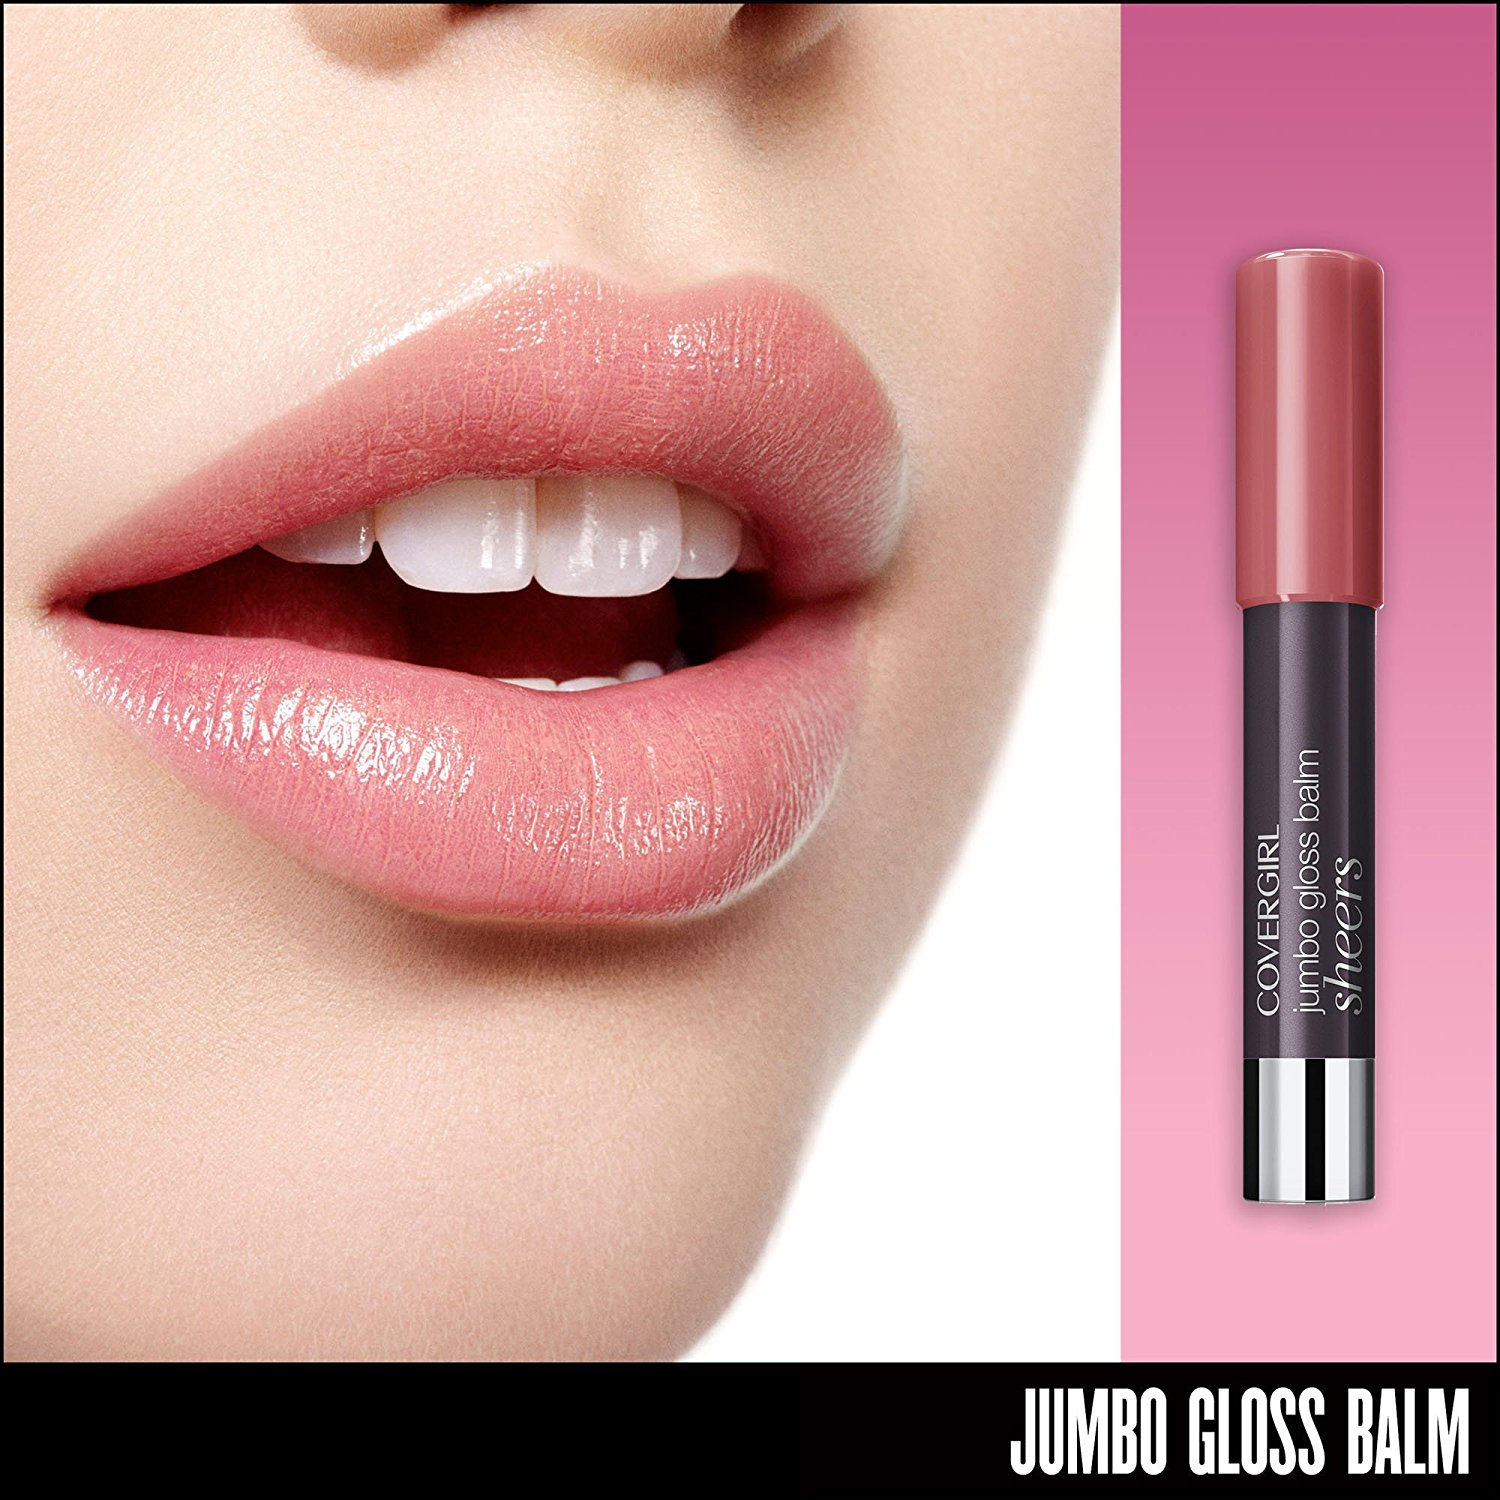 Designer deals club for hancock - Amazon Is Offering The Covergirl Lip Perfection Jumbo Gloss Balm Rose Twist 13oz For Just 1 00 Get A Sheer Color Soft Shine With No Stickiness